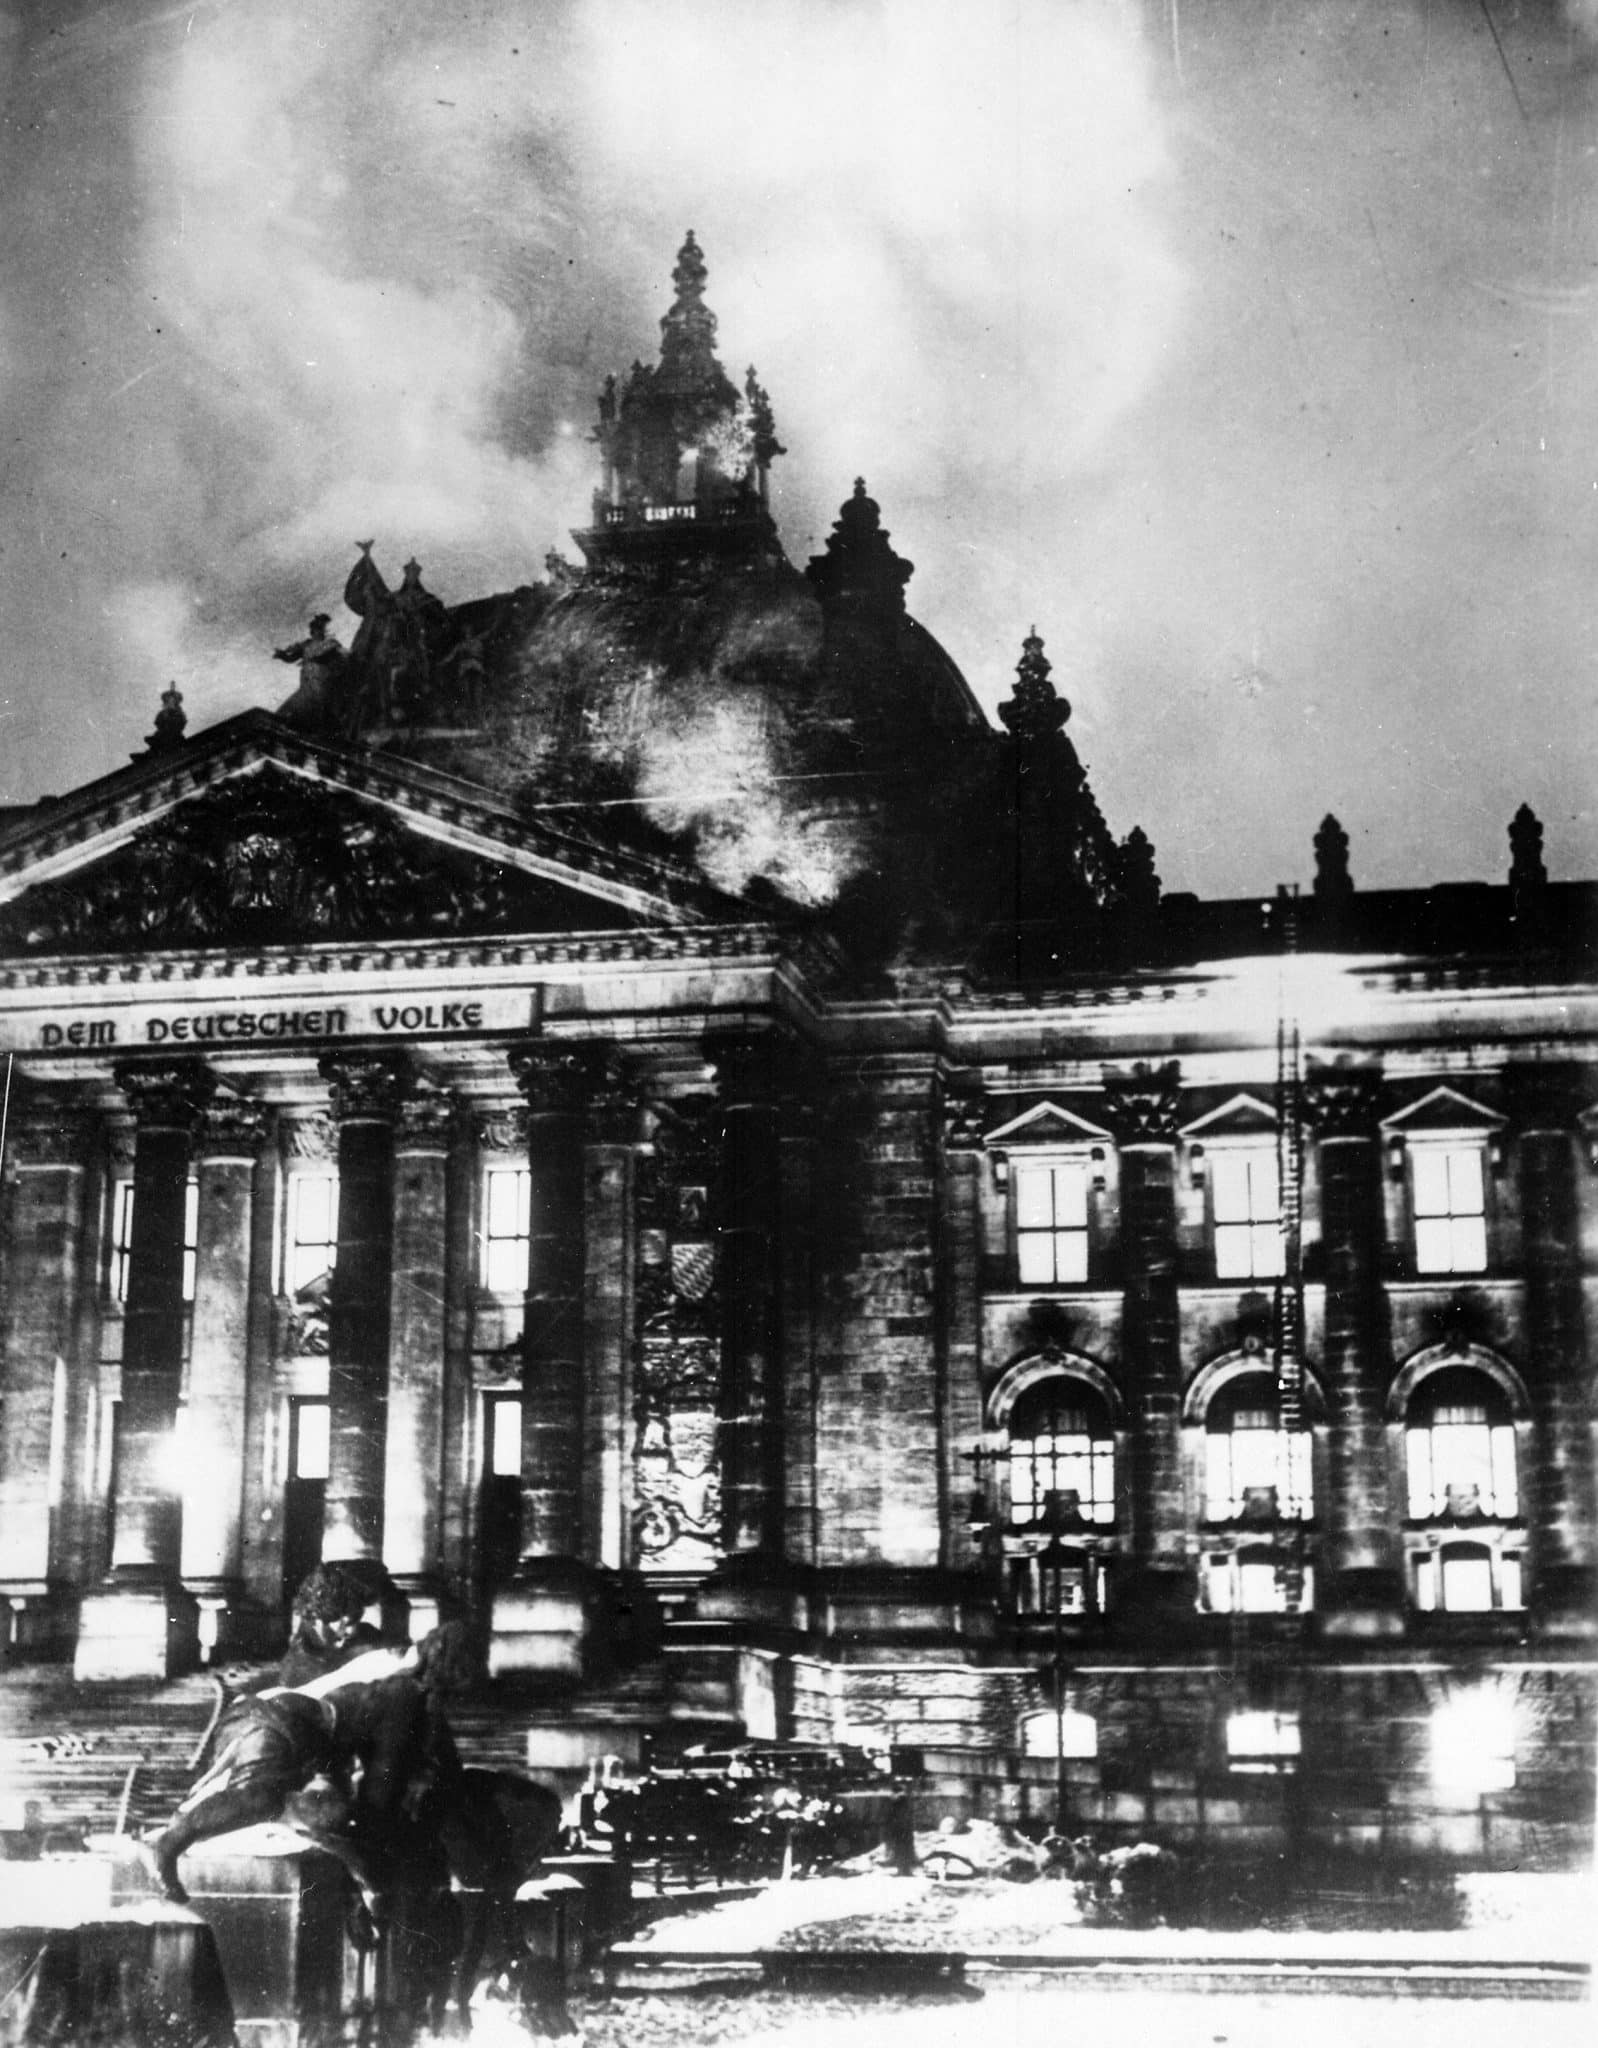 View of the Reichstag on fire from outside, February 27th 1933